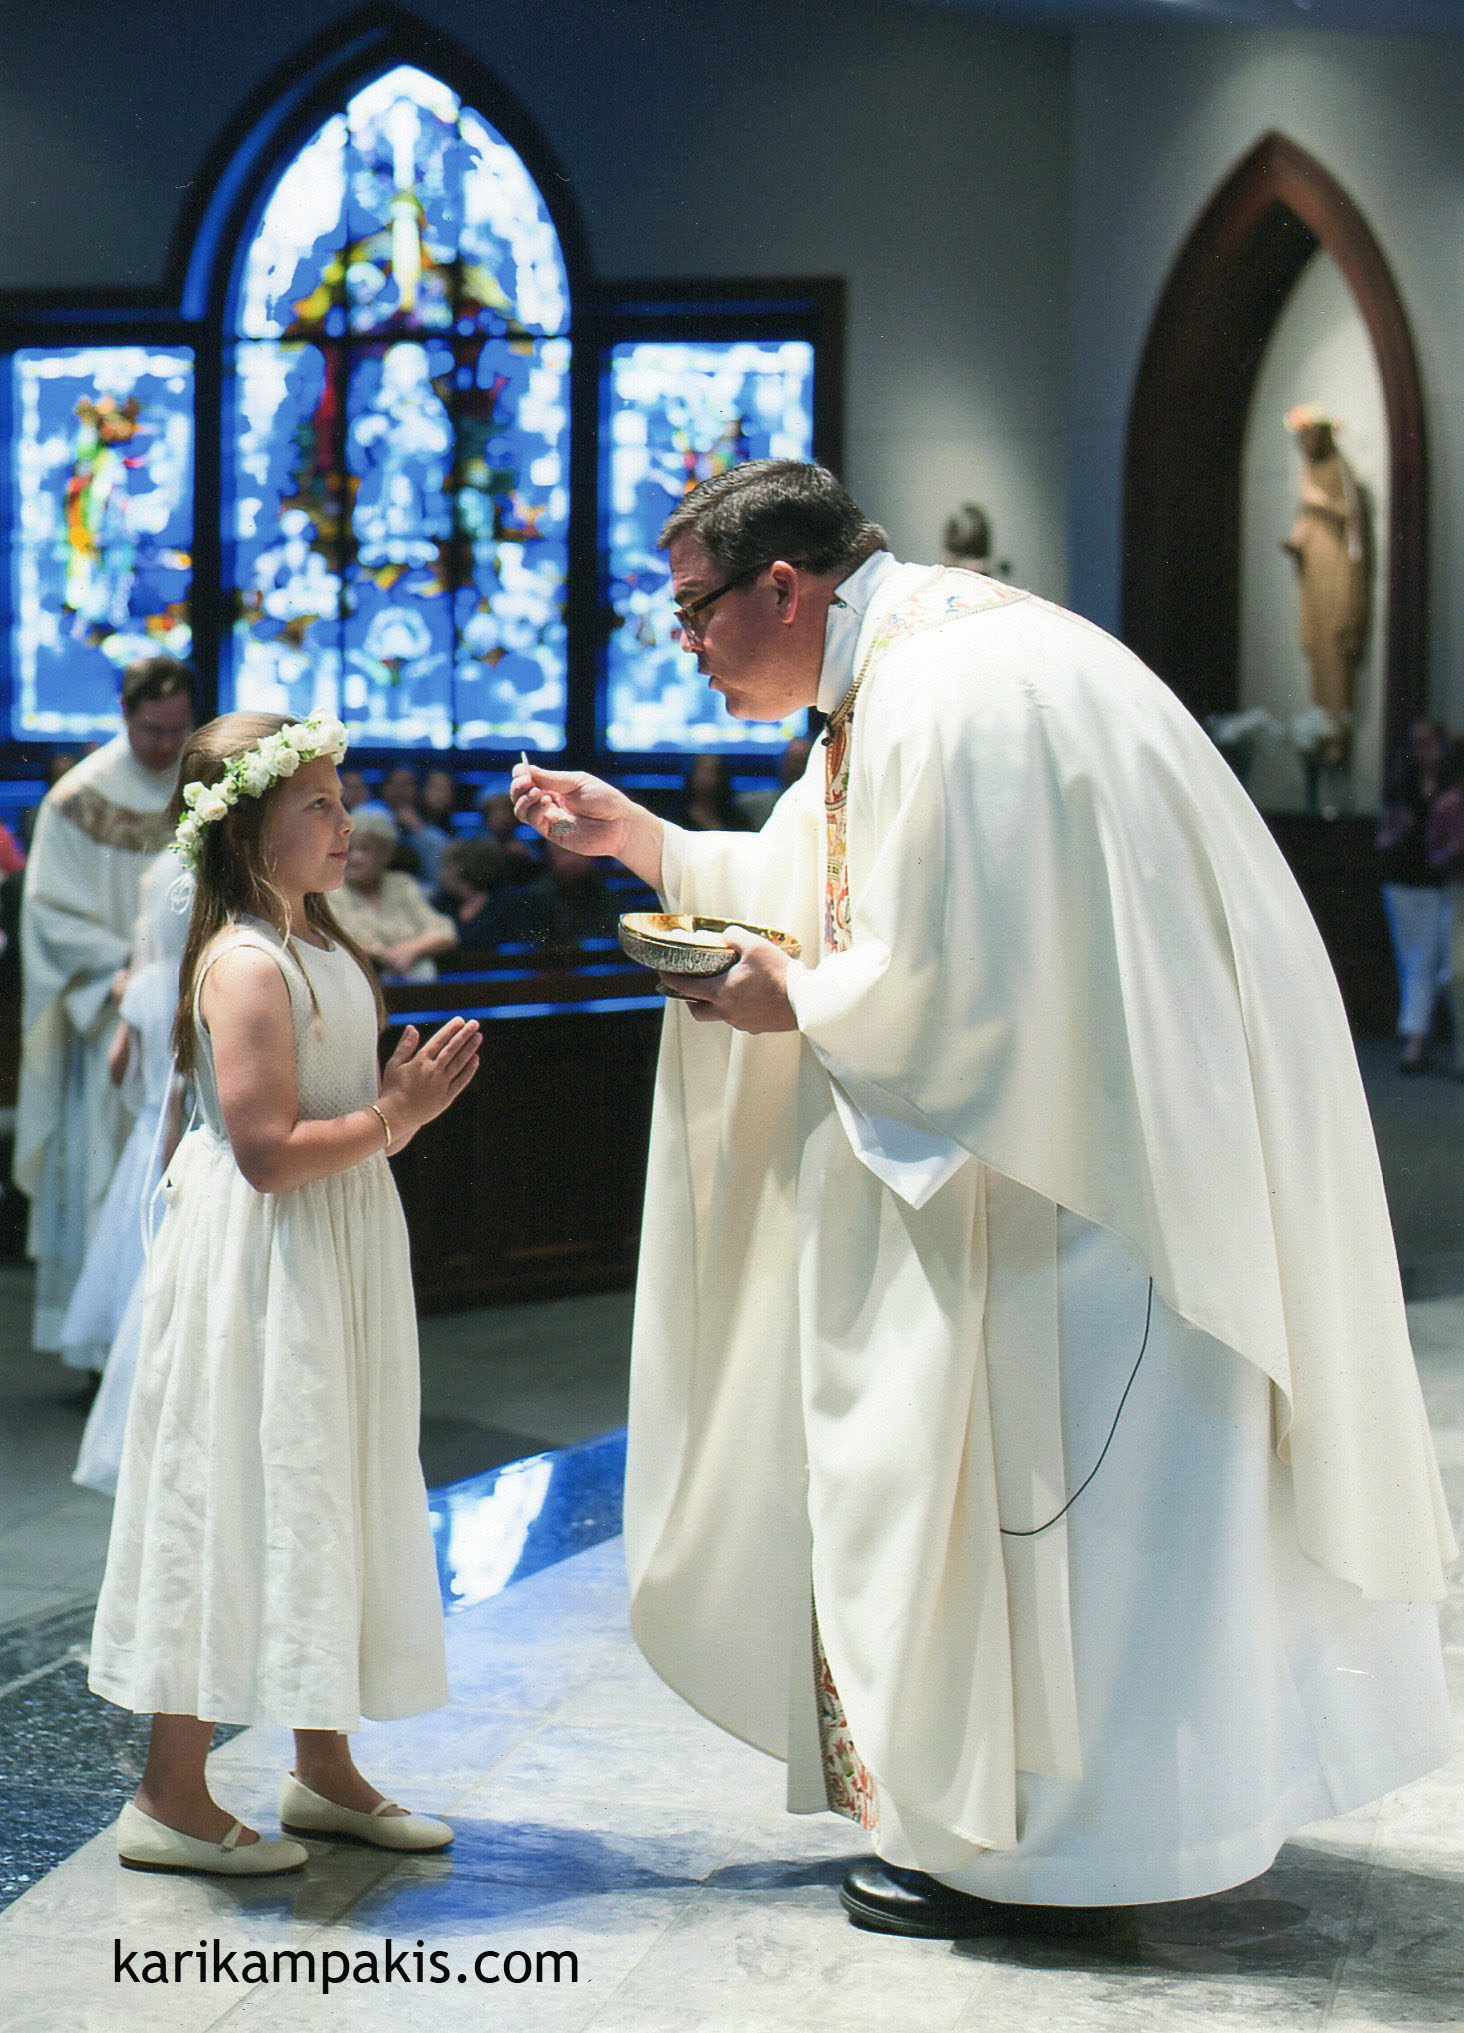 sophie first communion - Jeannie